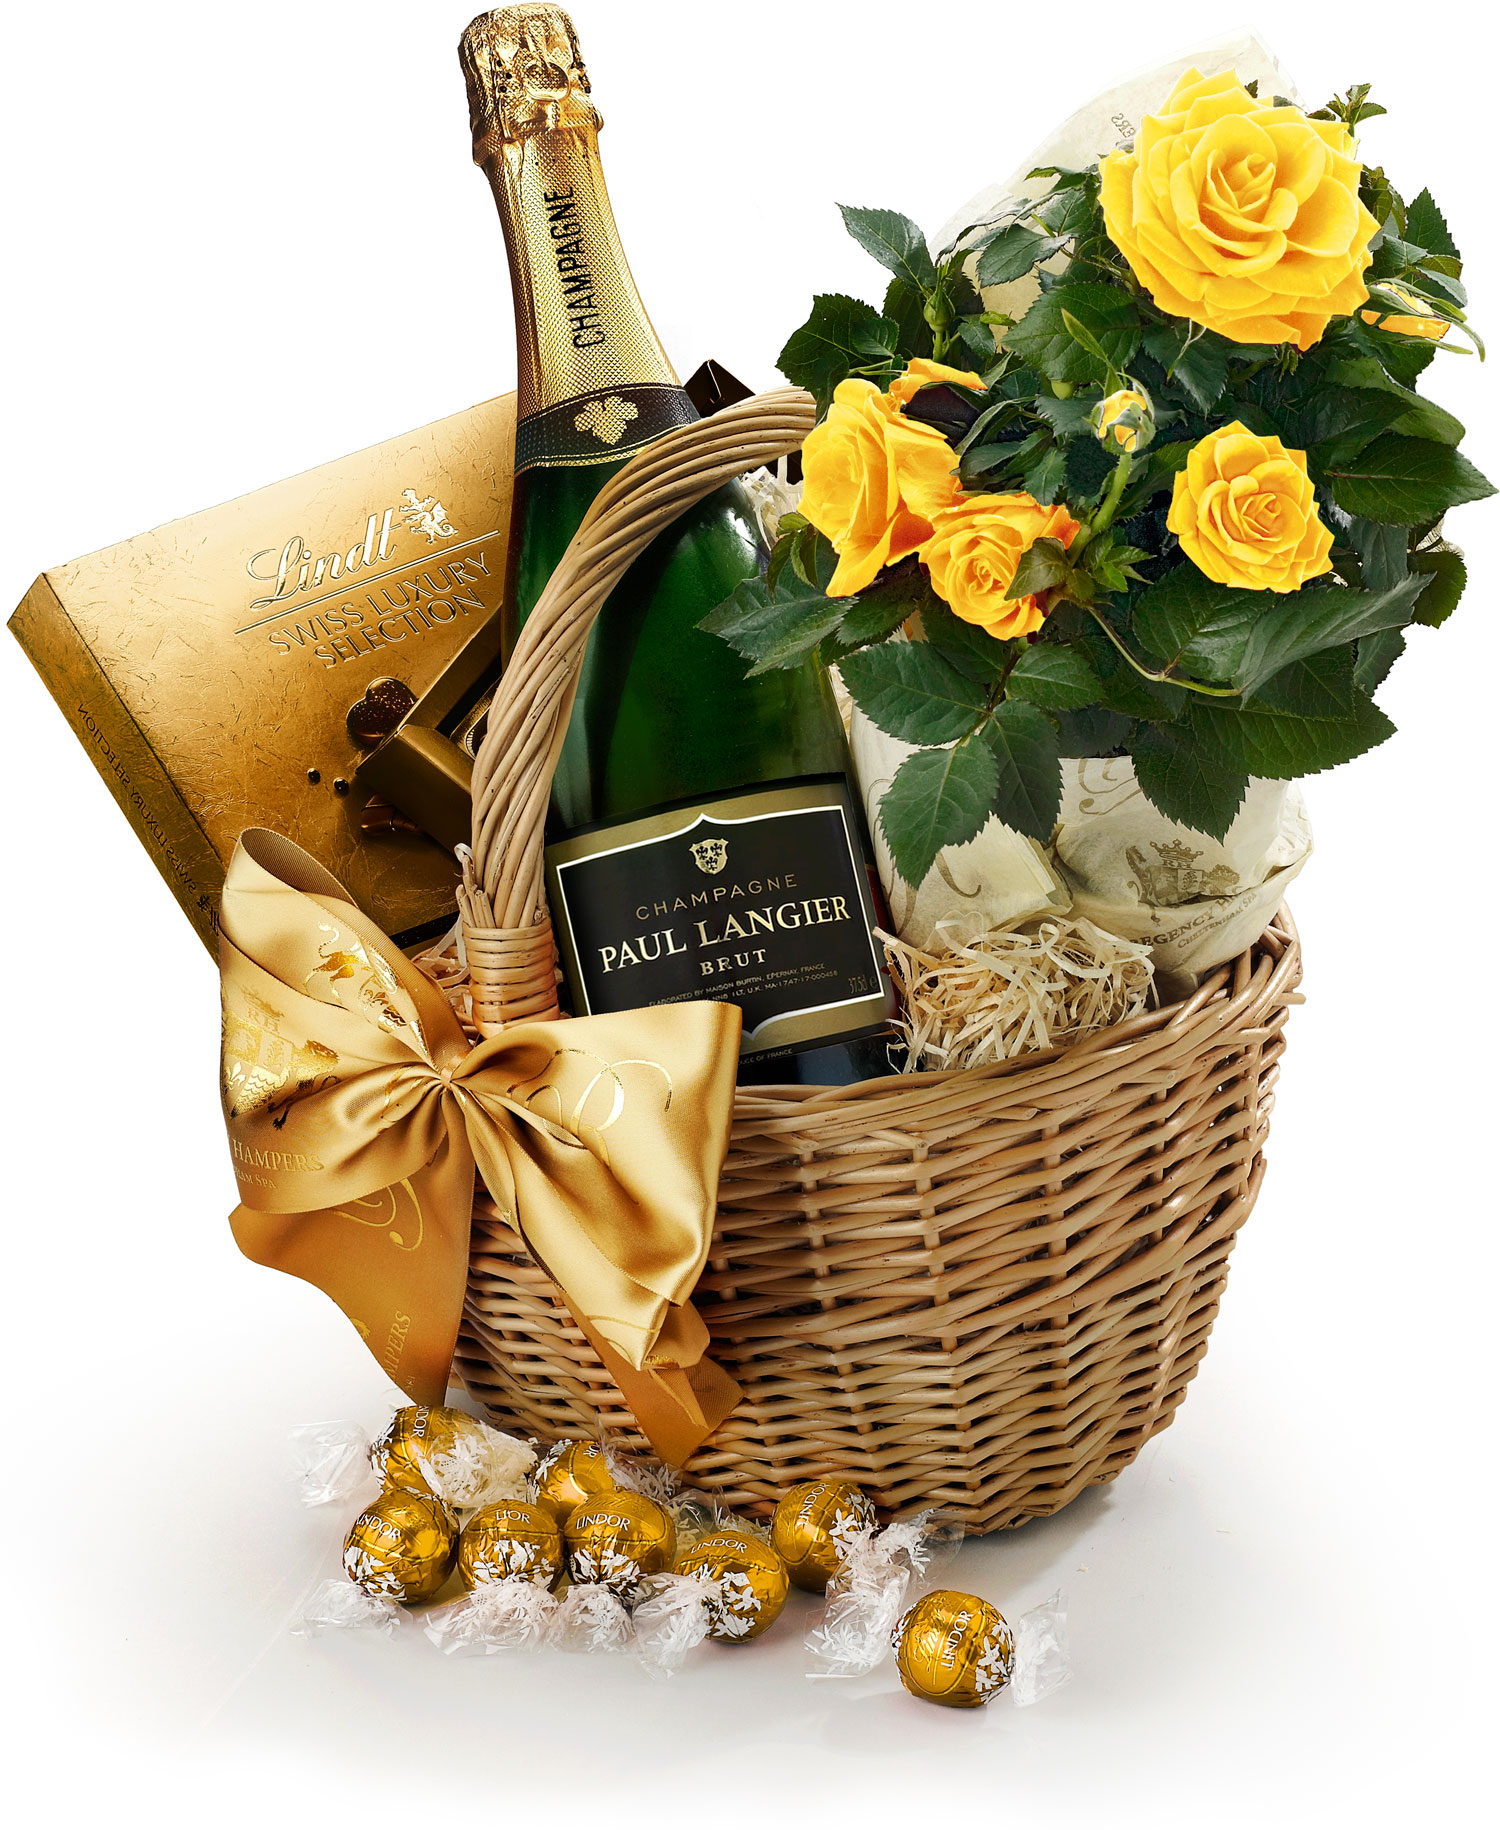 Wedding Gift Hampers Uk: Valentine's Day Roses & Chocolate Gift Basket With